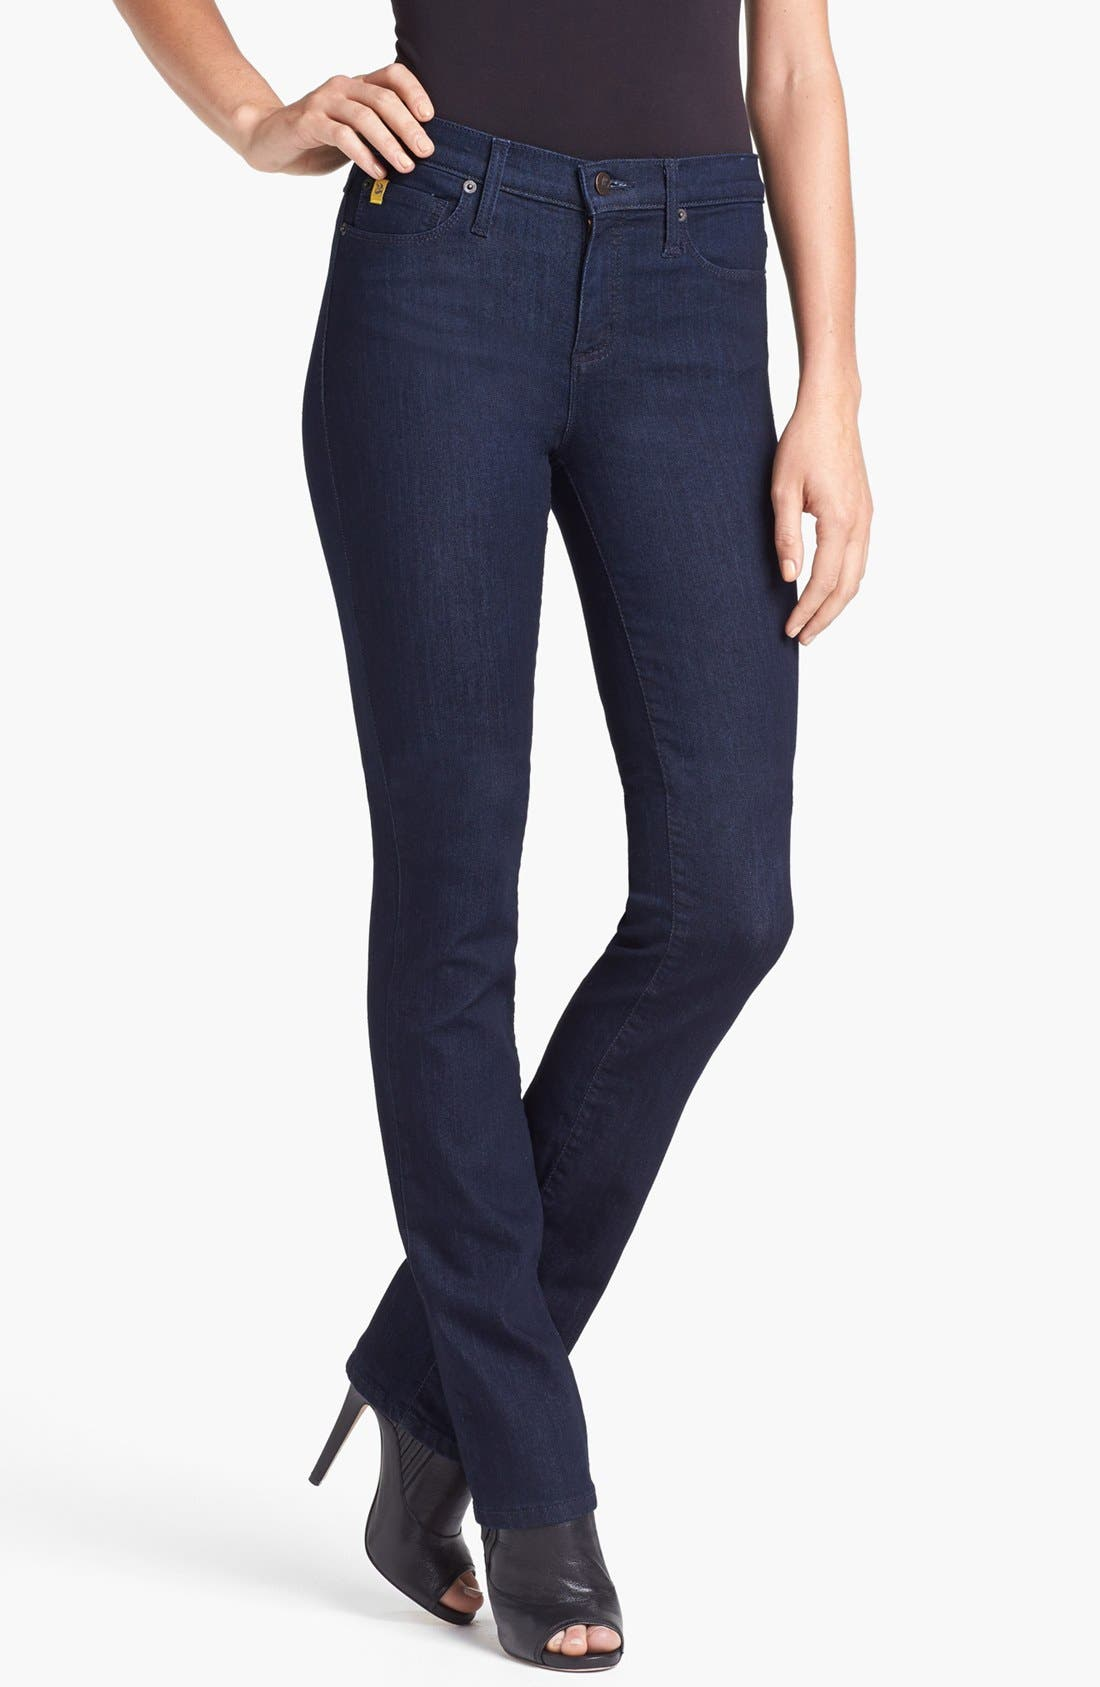 Main Image - Yoga Jeans by Second Straight Leg Jeans